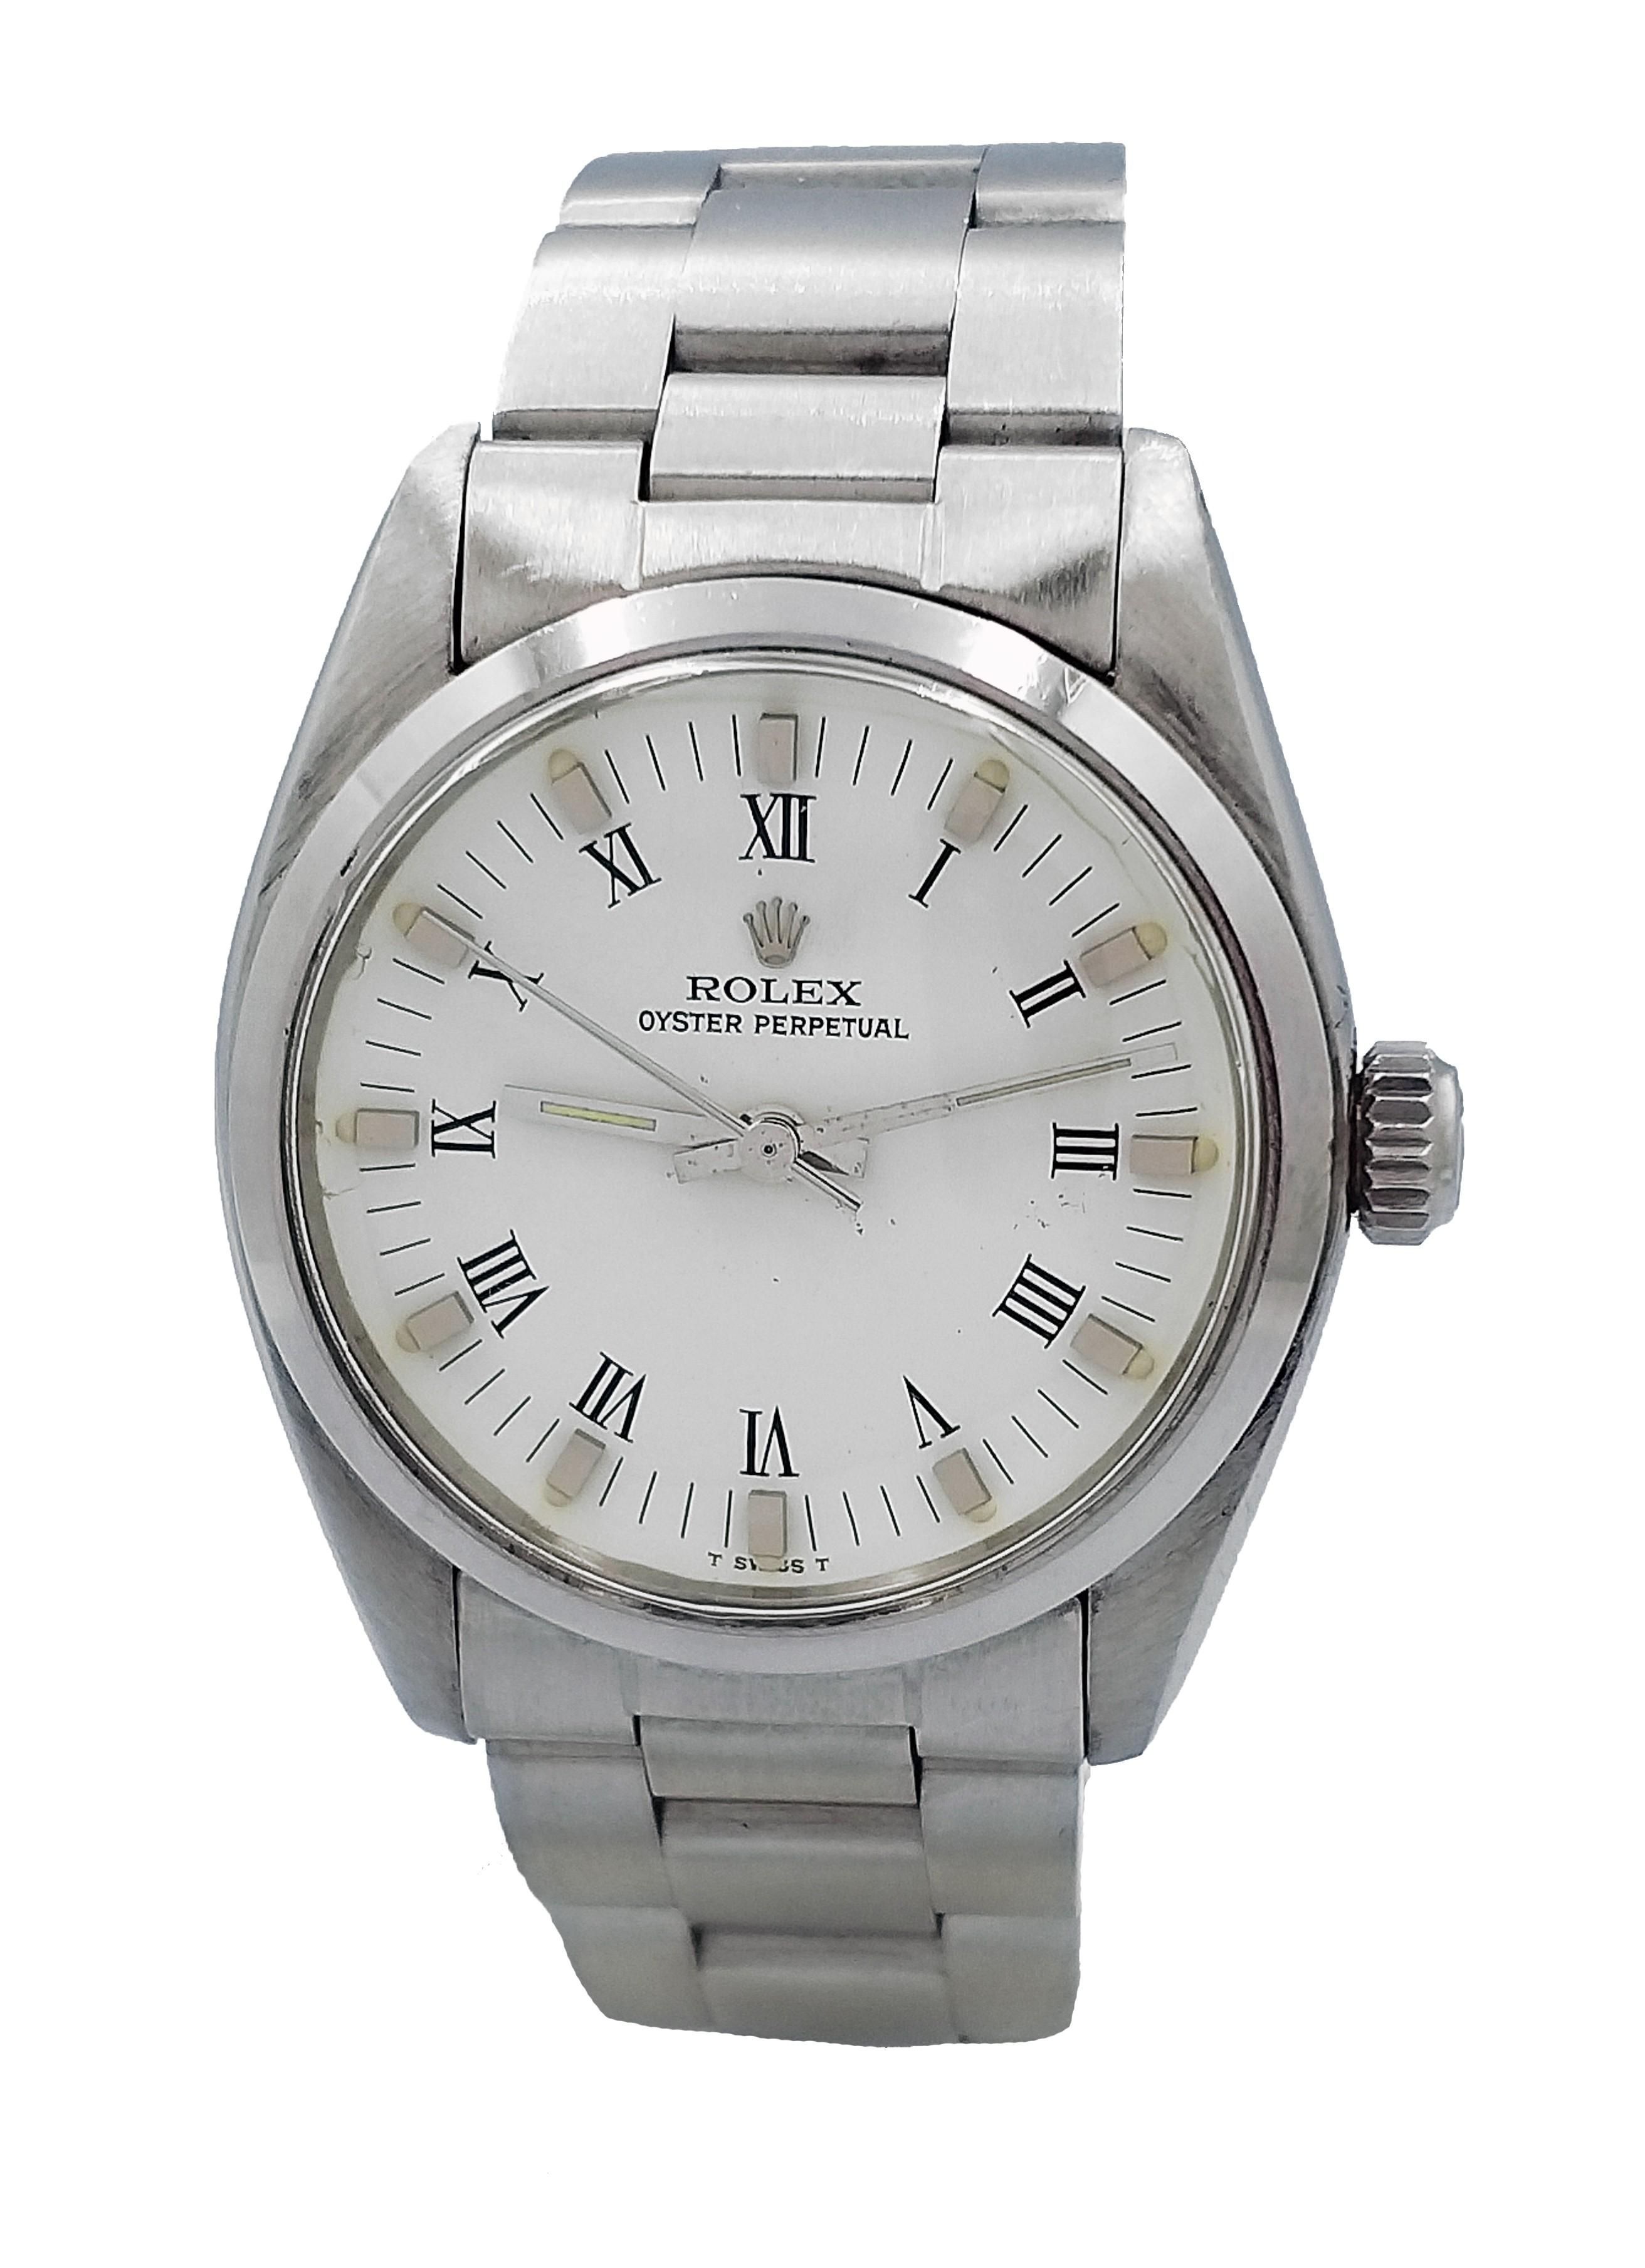 Rolex Oyster Perpetual 31 mm Ref. 6748